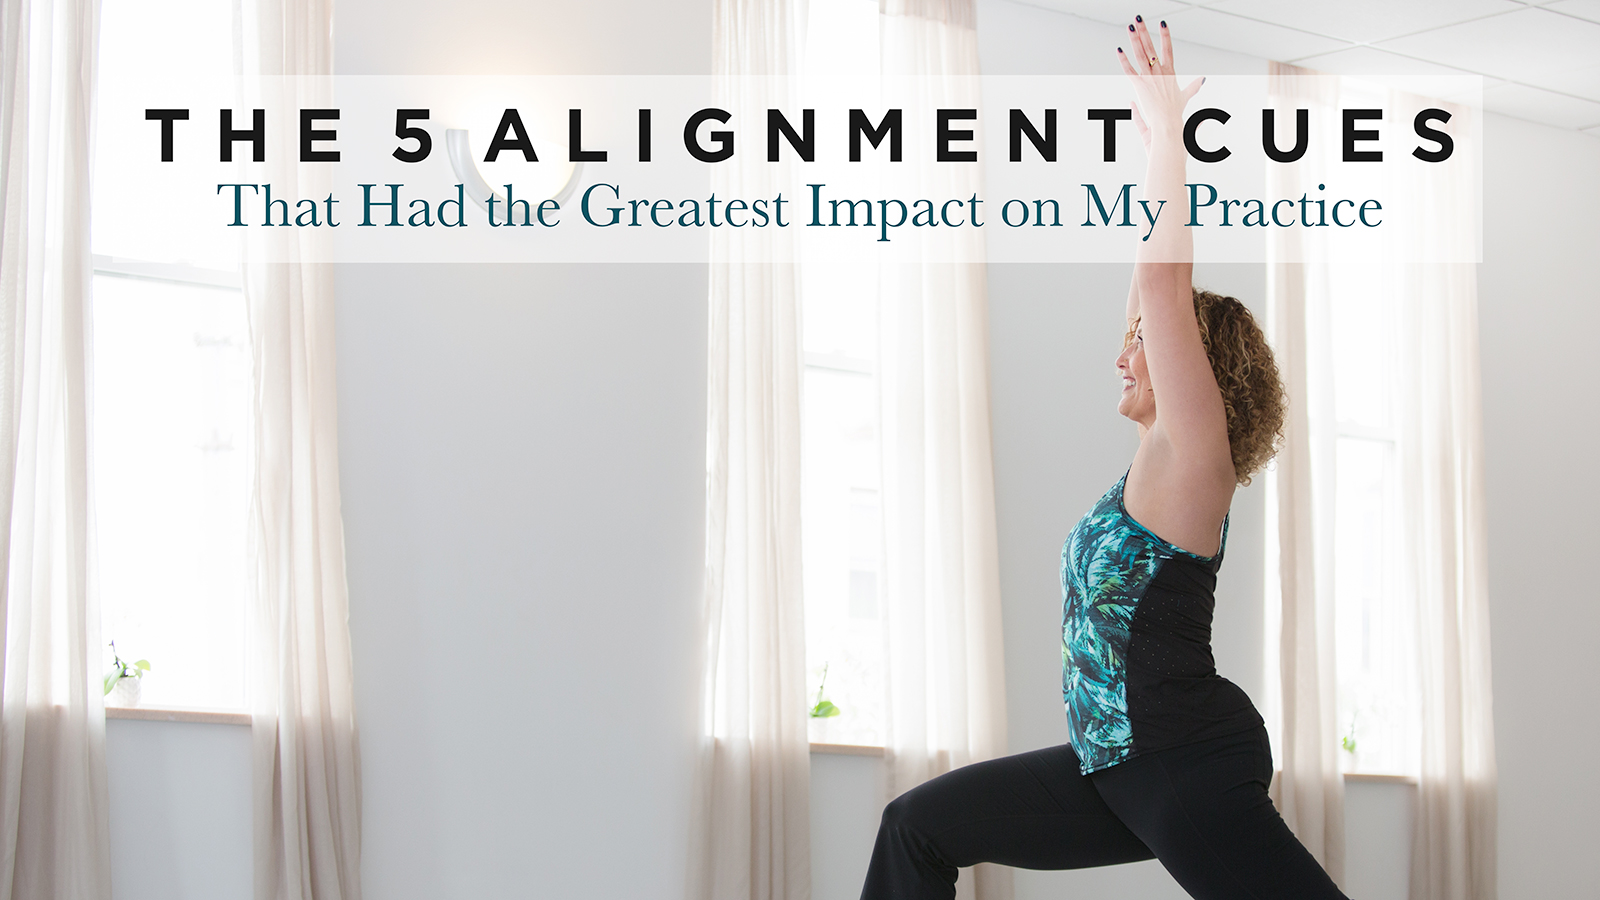 The 5 Alignment Cues That Had the Greatest Impact on My Practice